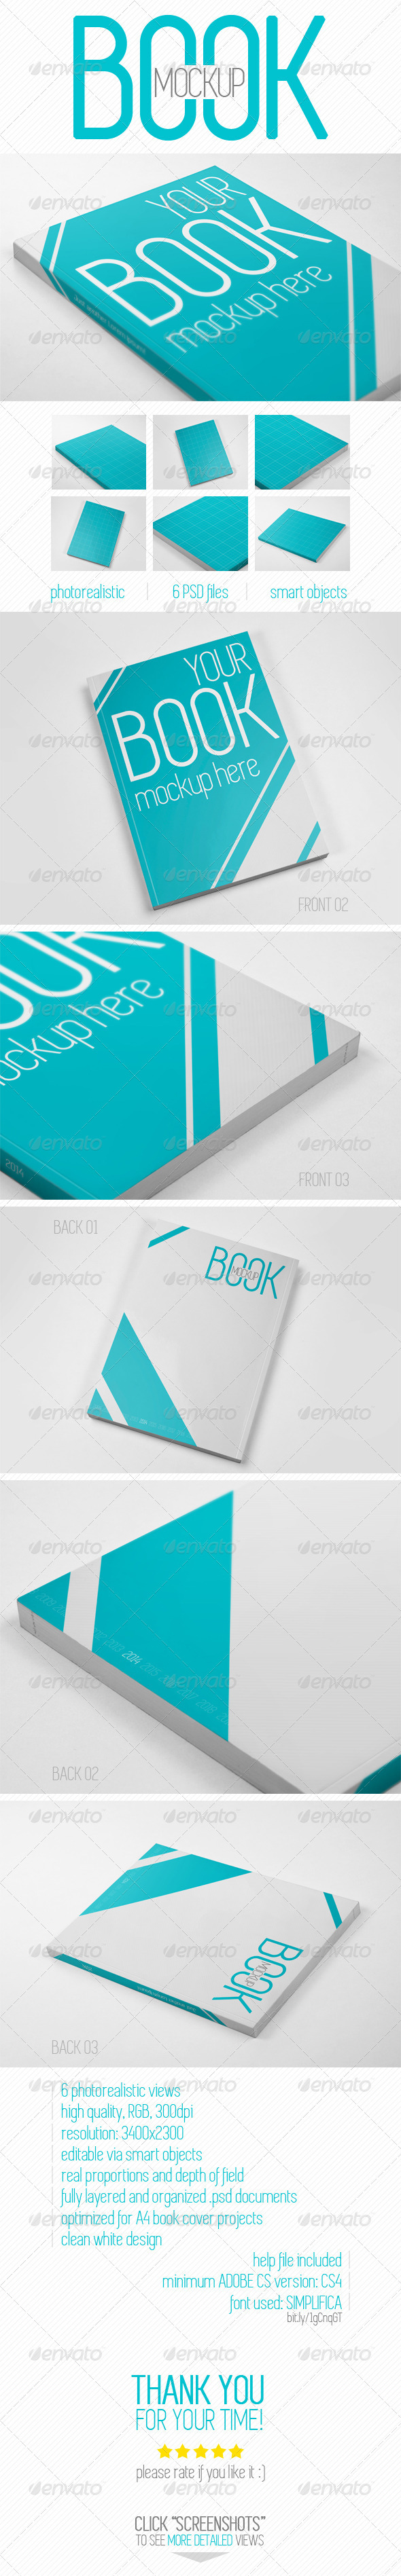 GraphicRiver Book Cover Mock-up 7909442